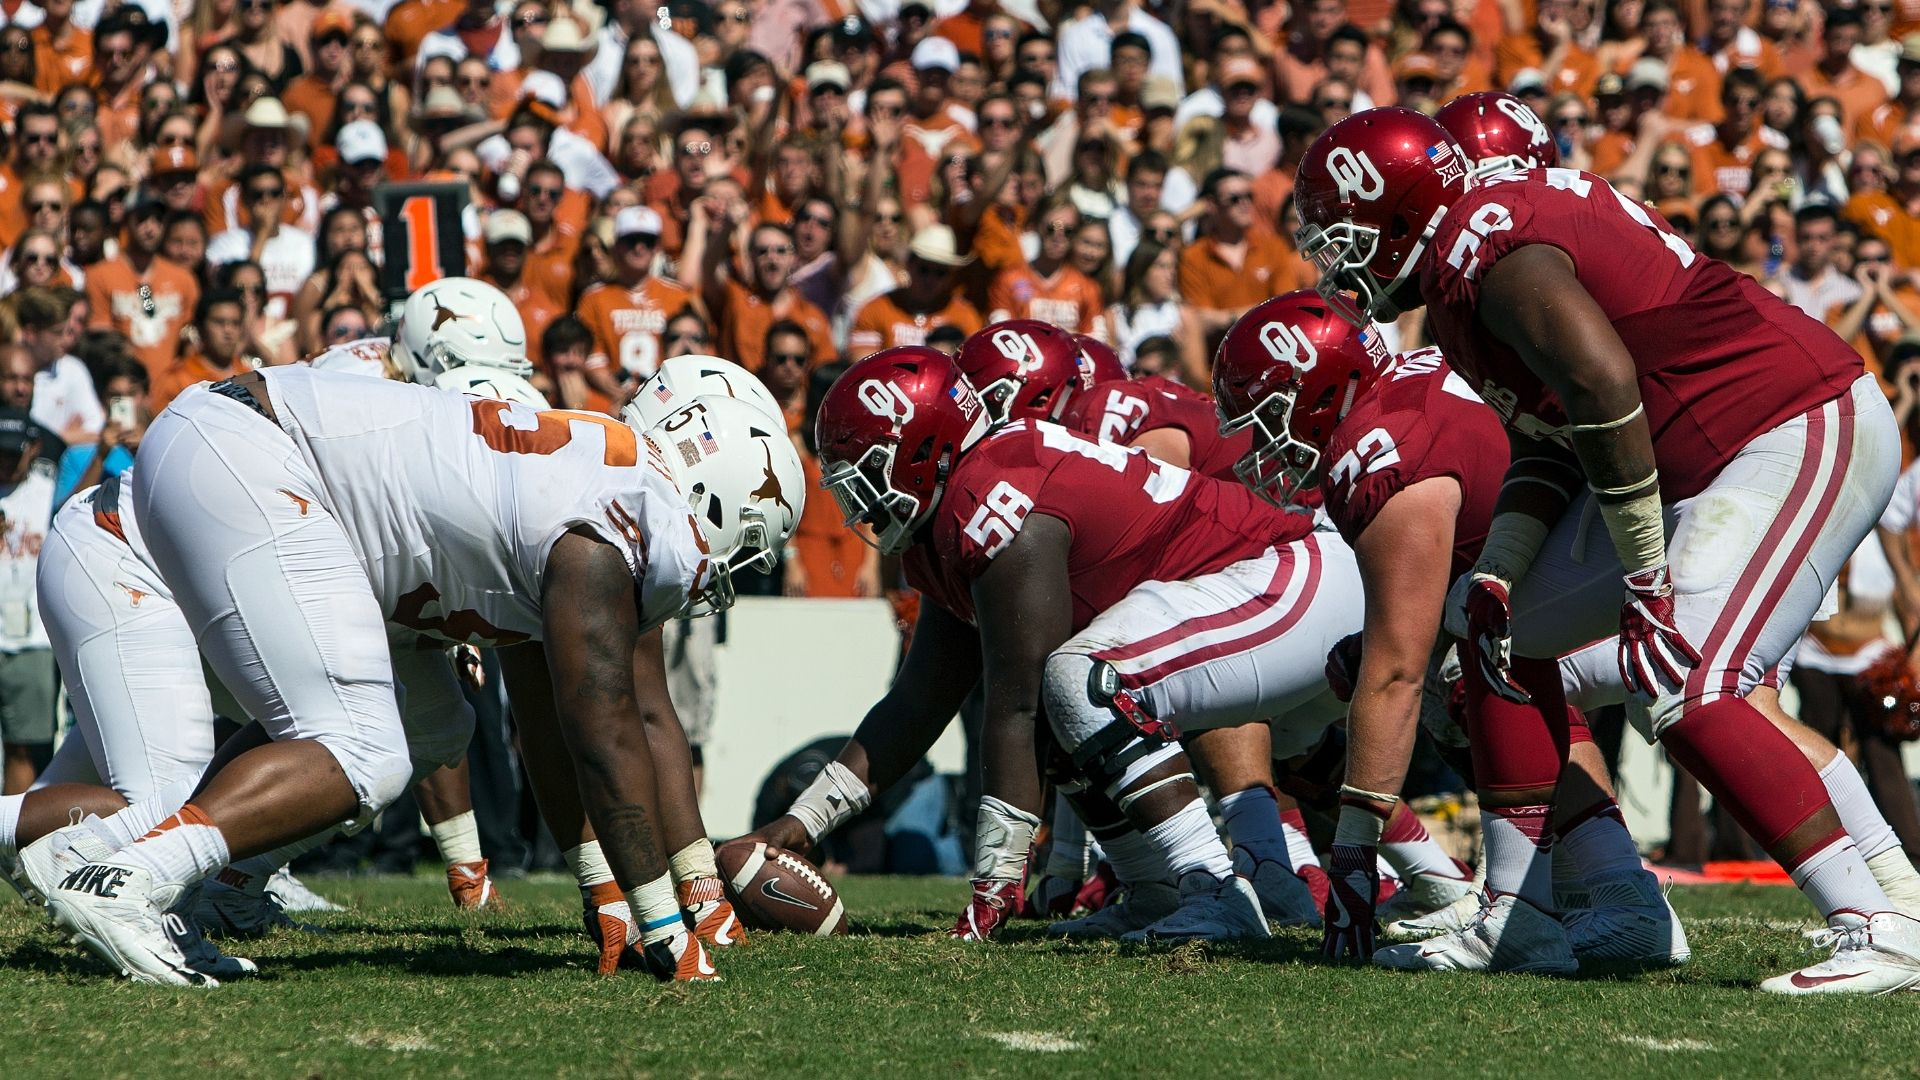 Oklahoma-Texas always heated in Red River Rivalry